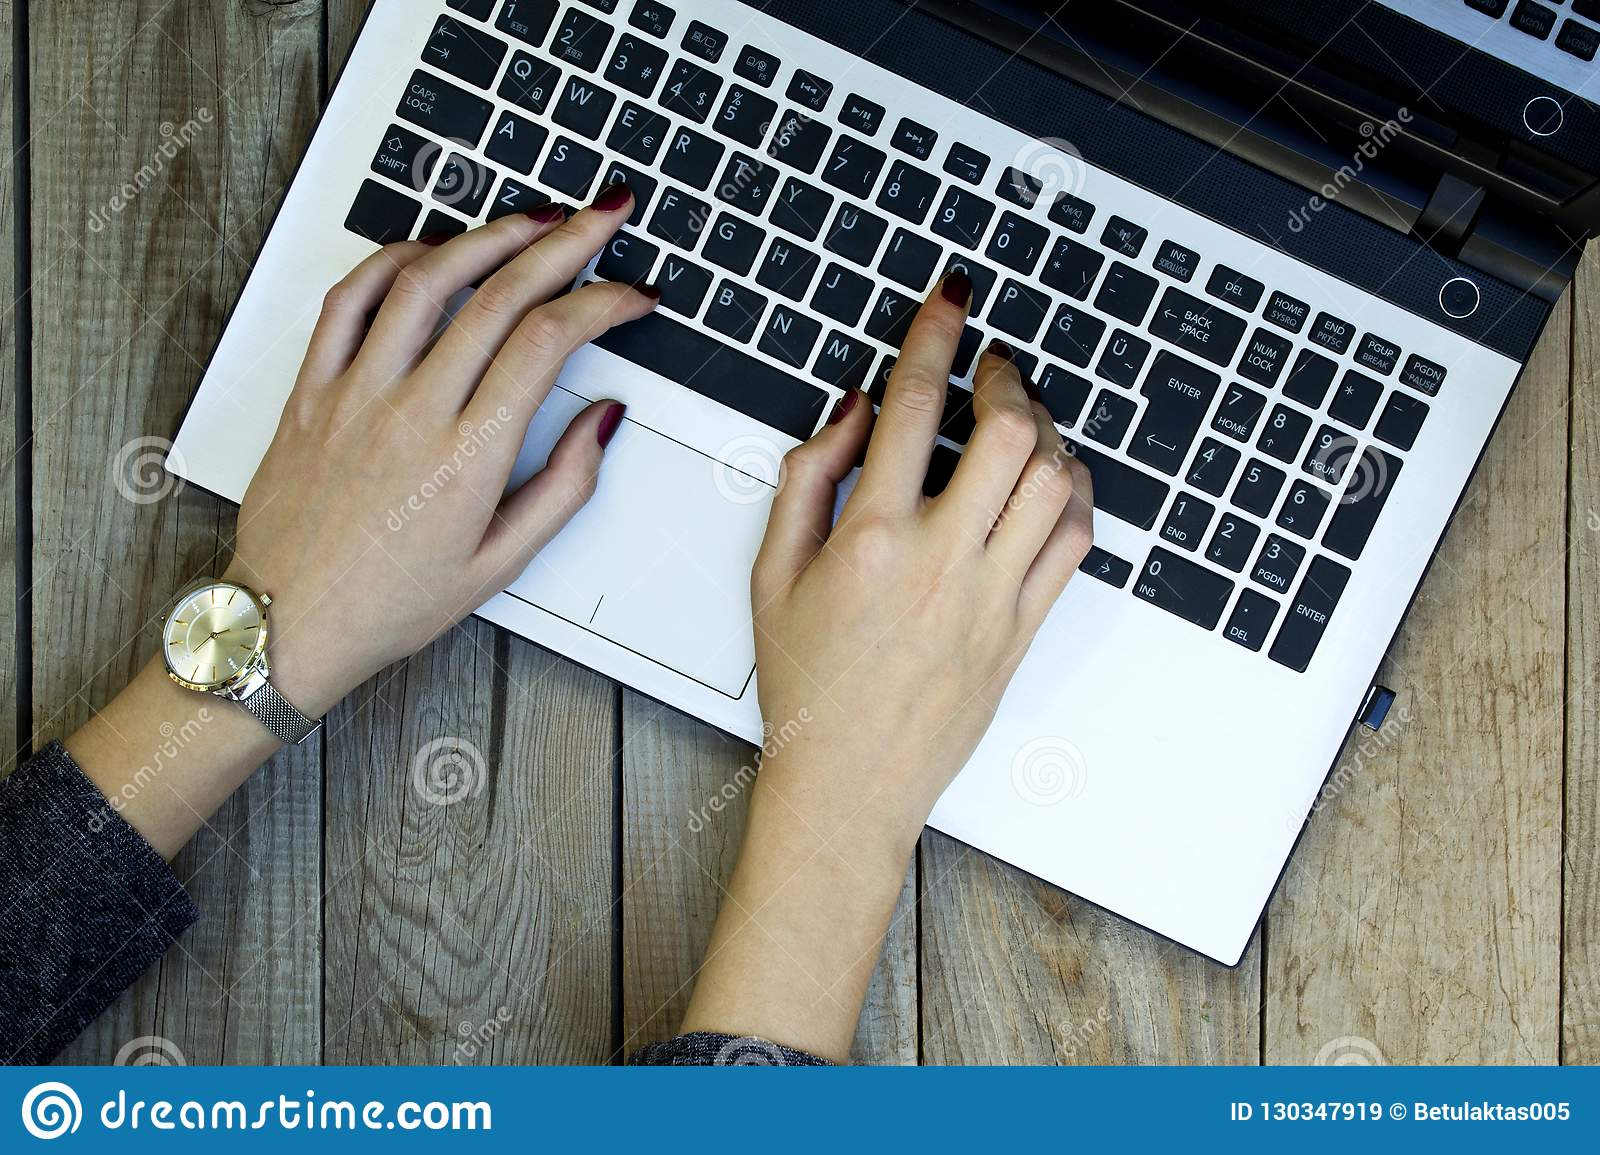 Woman hands using laptop on wooden background.